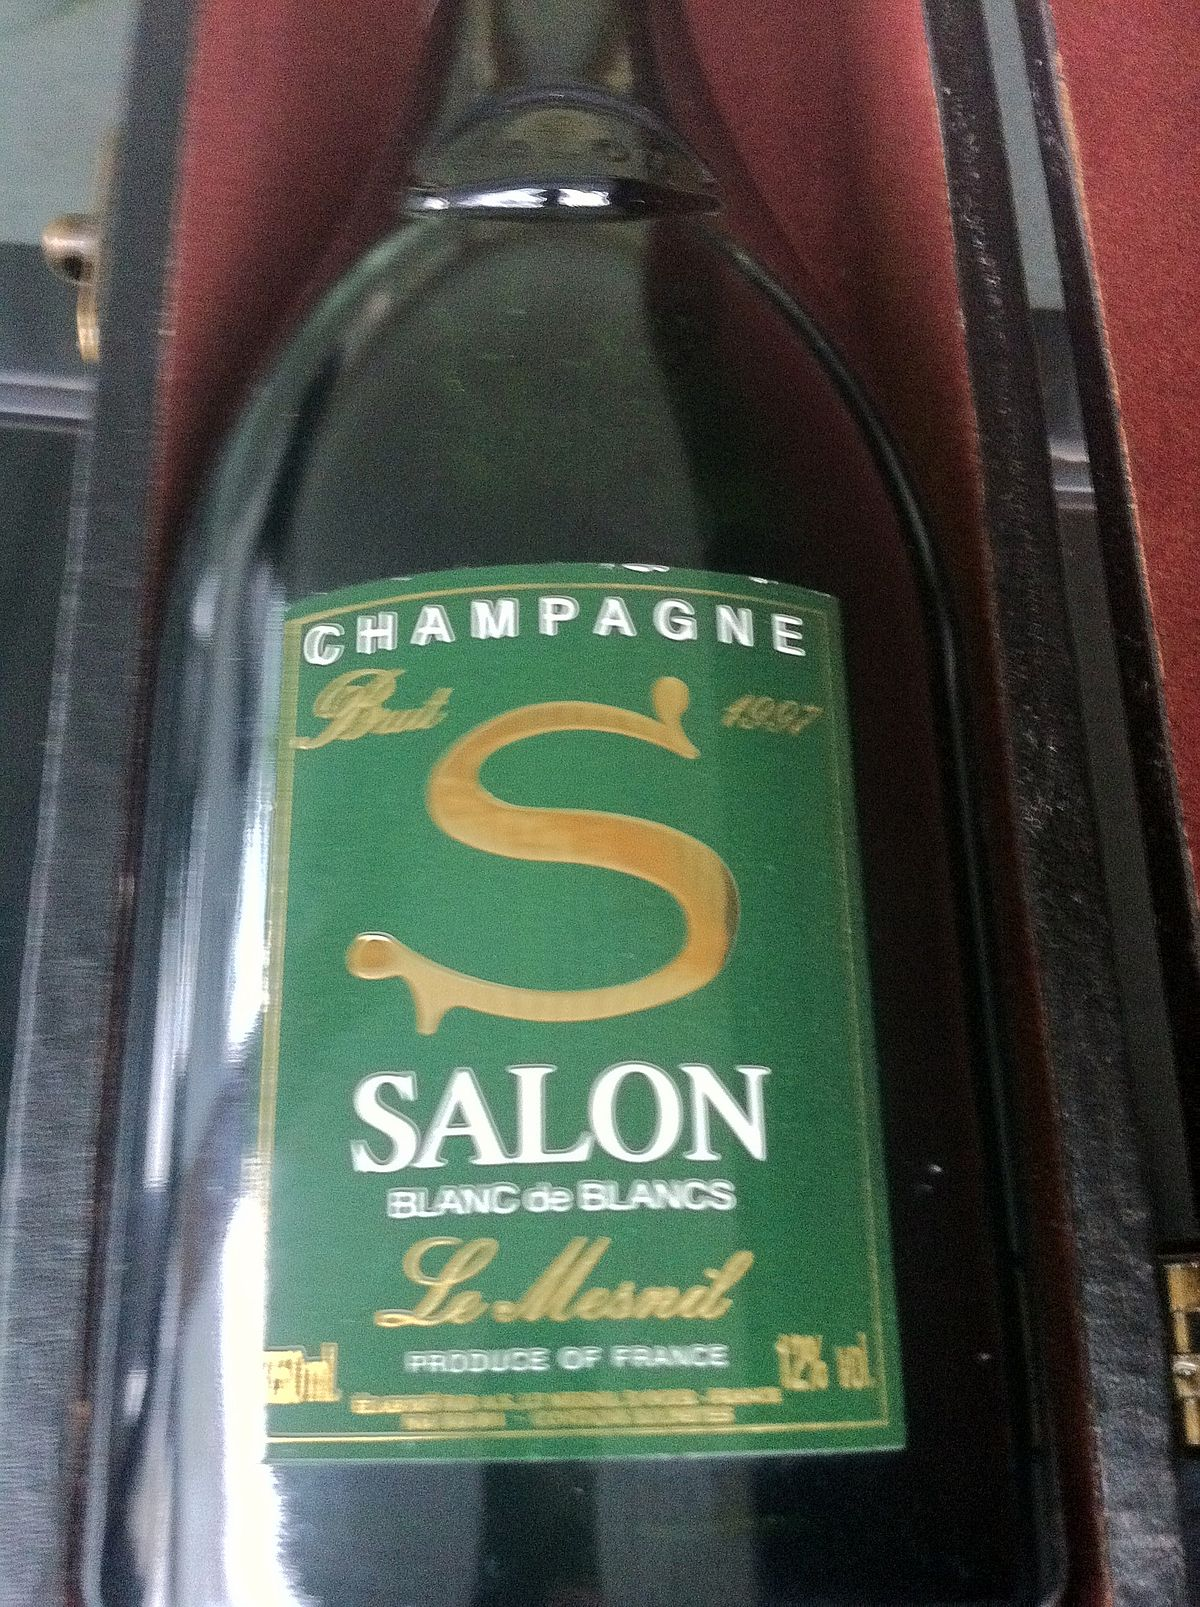 Champagne salon wikipedia for 1997 champagne salon